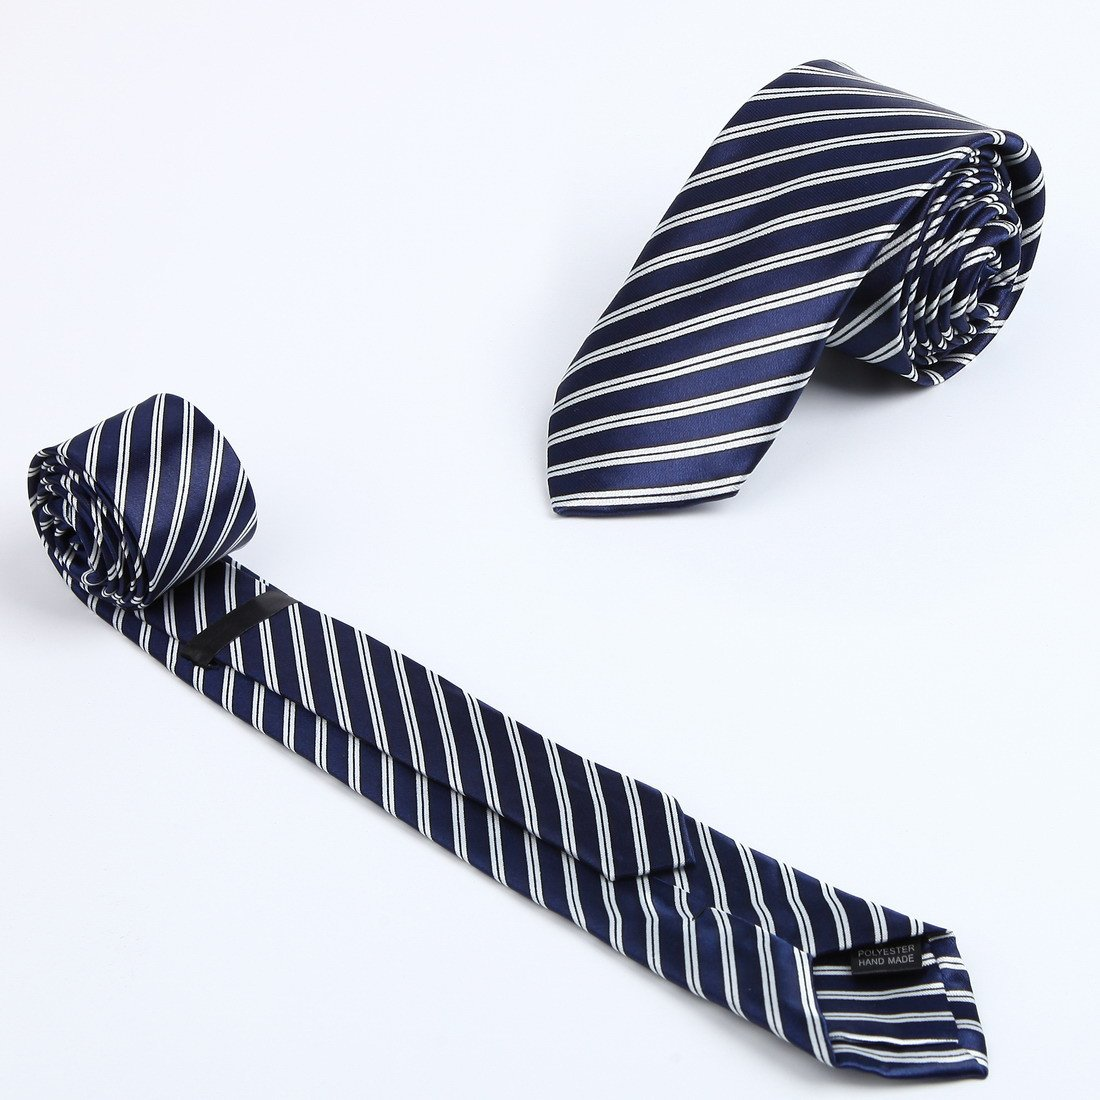 KT3066 Love Shopstyle Slim Ties Polyester Fantastic World 3 Pack Skinny Ties Set by Dan Smith by Dan Smith (Image #5)